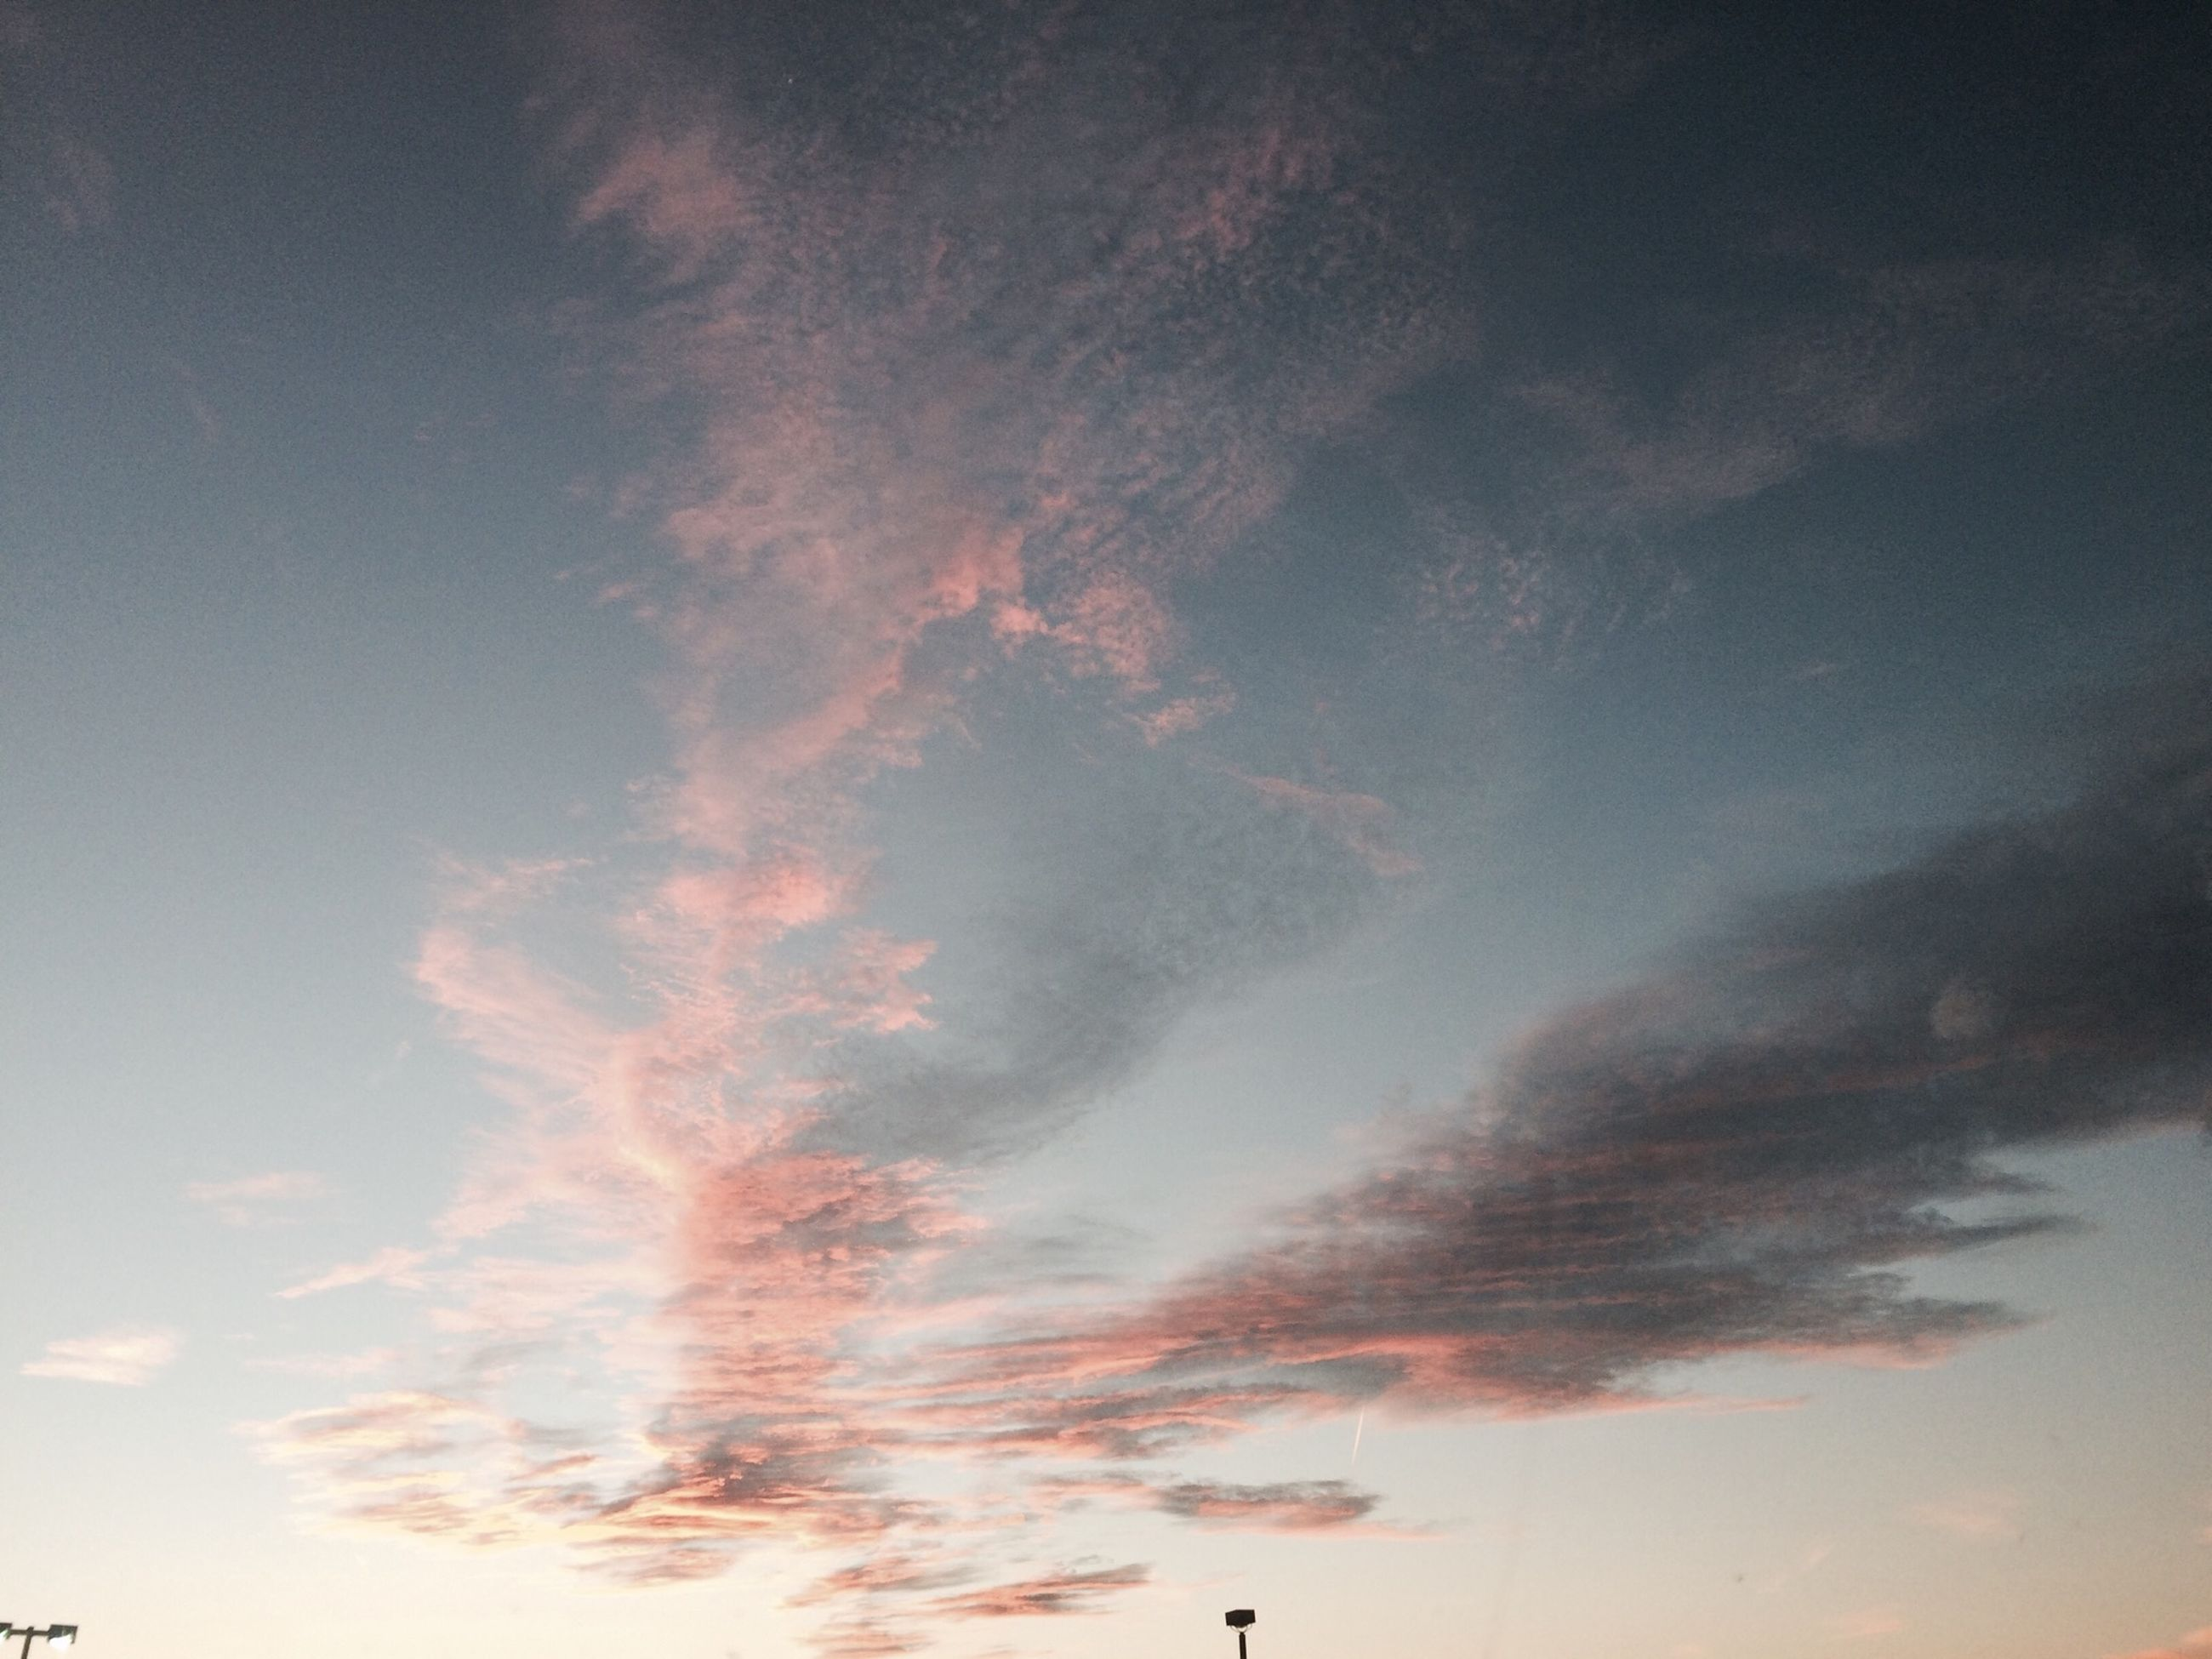 low angle view, sky, cloud - sky, beauty in nature, tranquility, scenics, cloudy, nature, sunset, tranquil scene, sky only, cloud, idyllic, outdoors, silhouette, no people, flying, cloudscape, backgrounds, weather